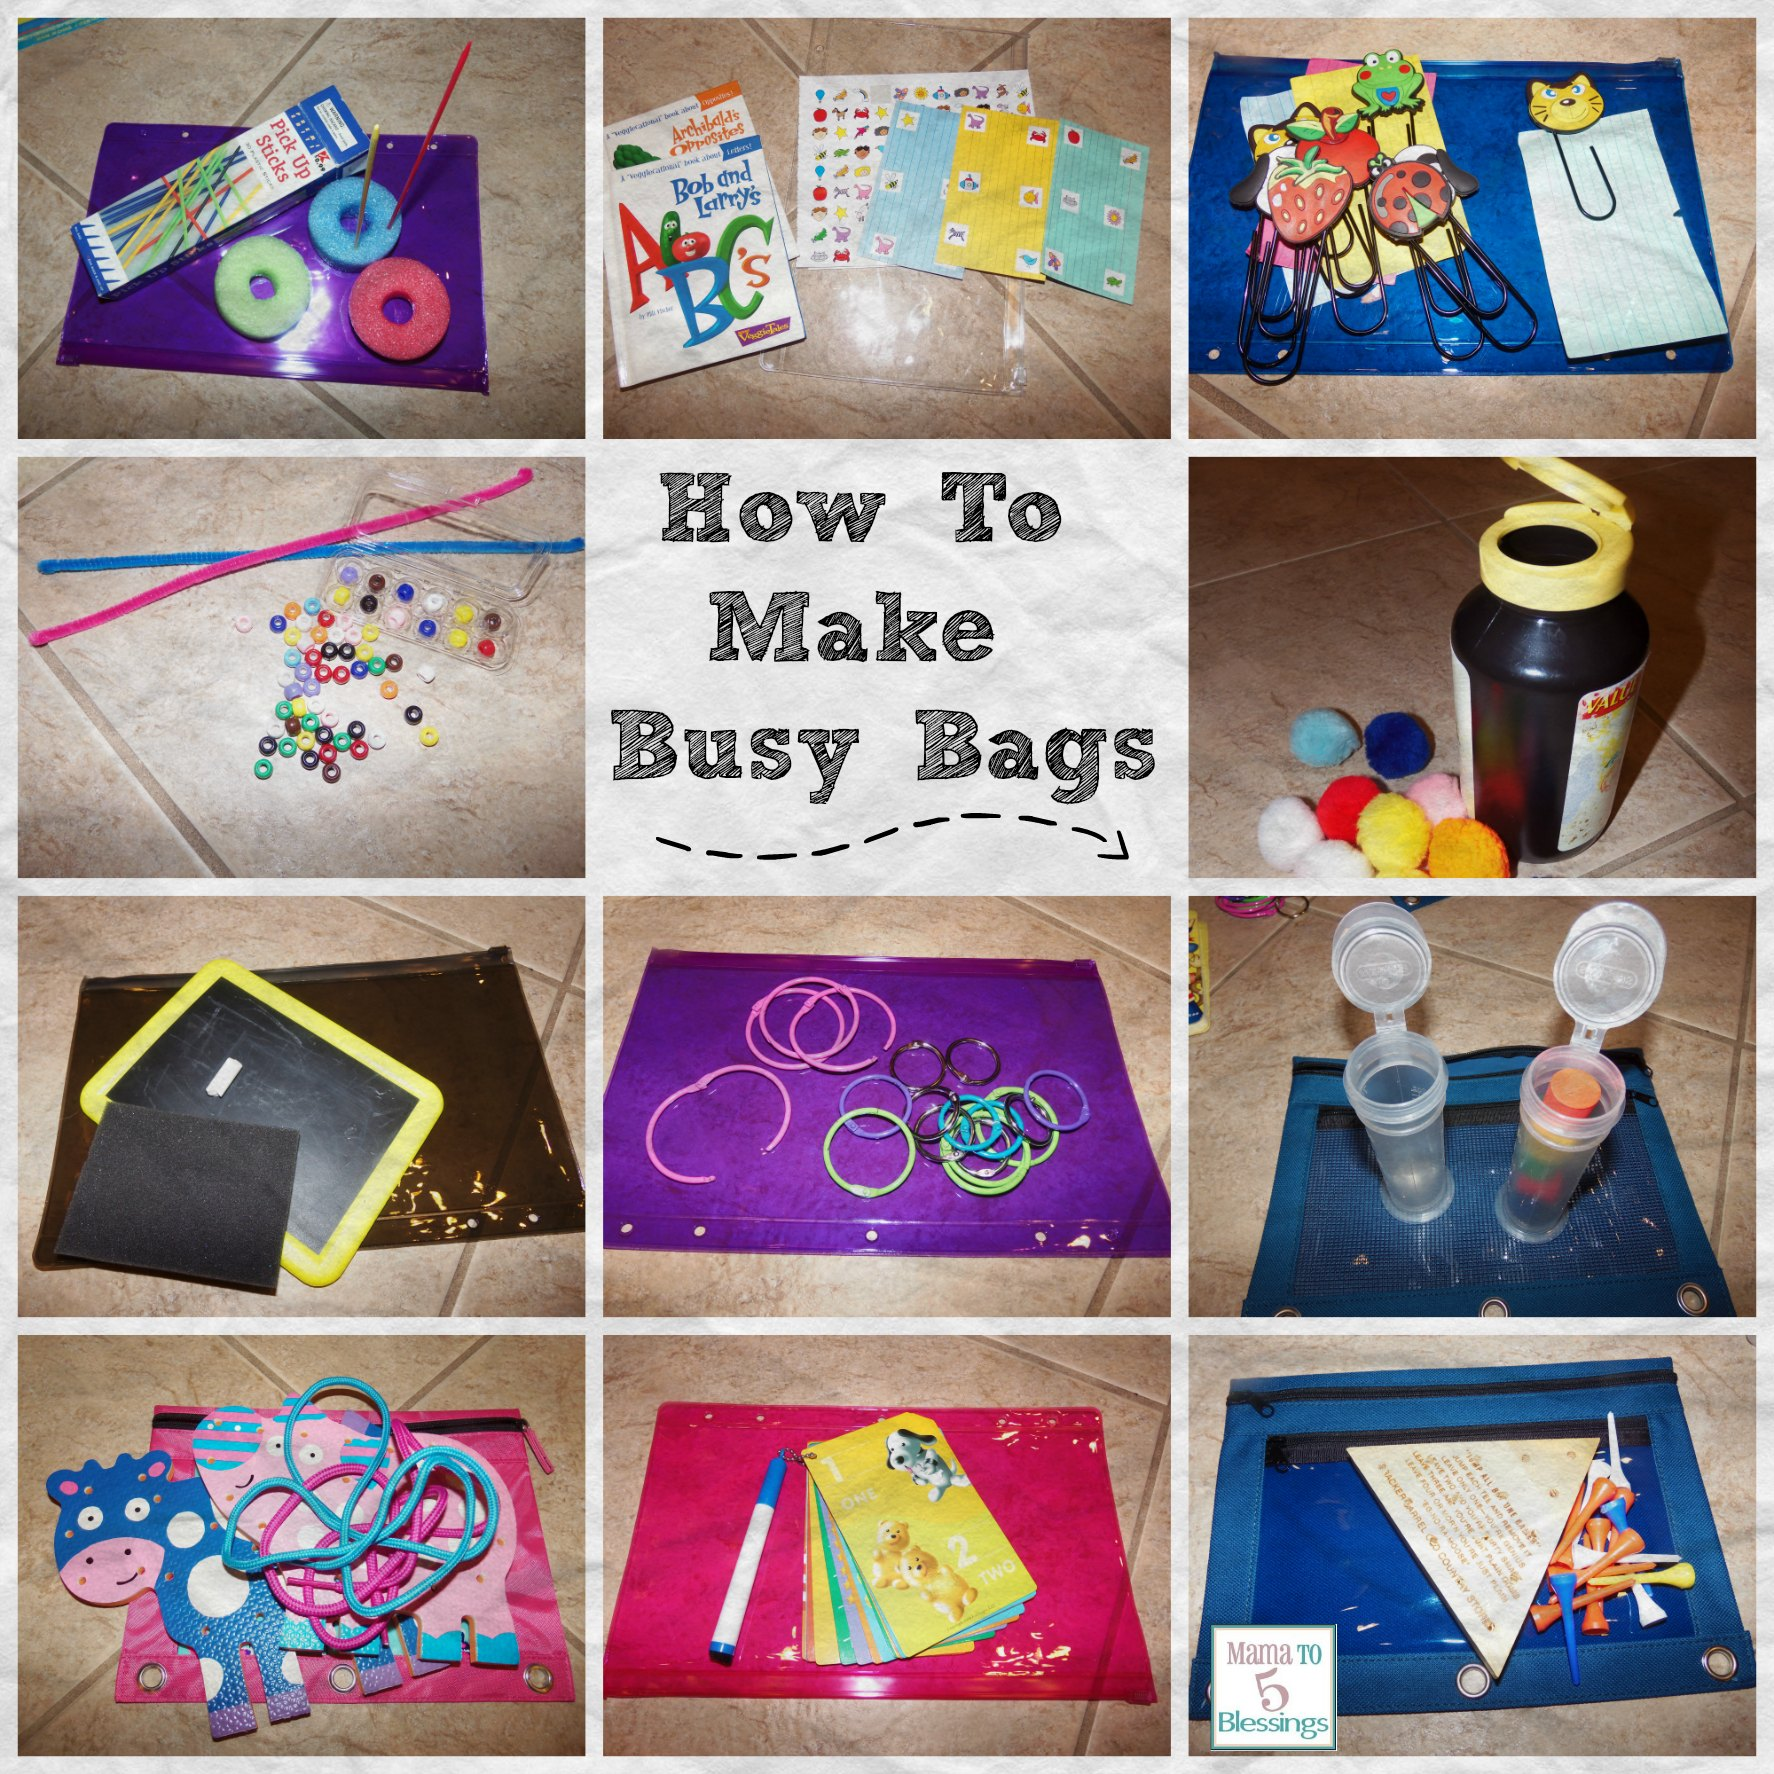 How To Make Busy Bags To Keep Your Little One Busy